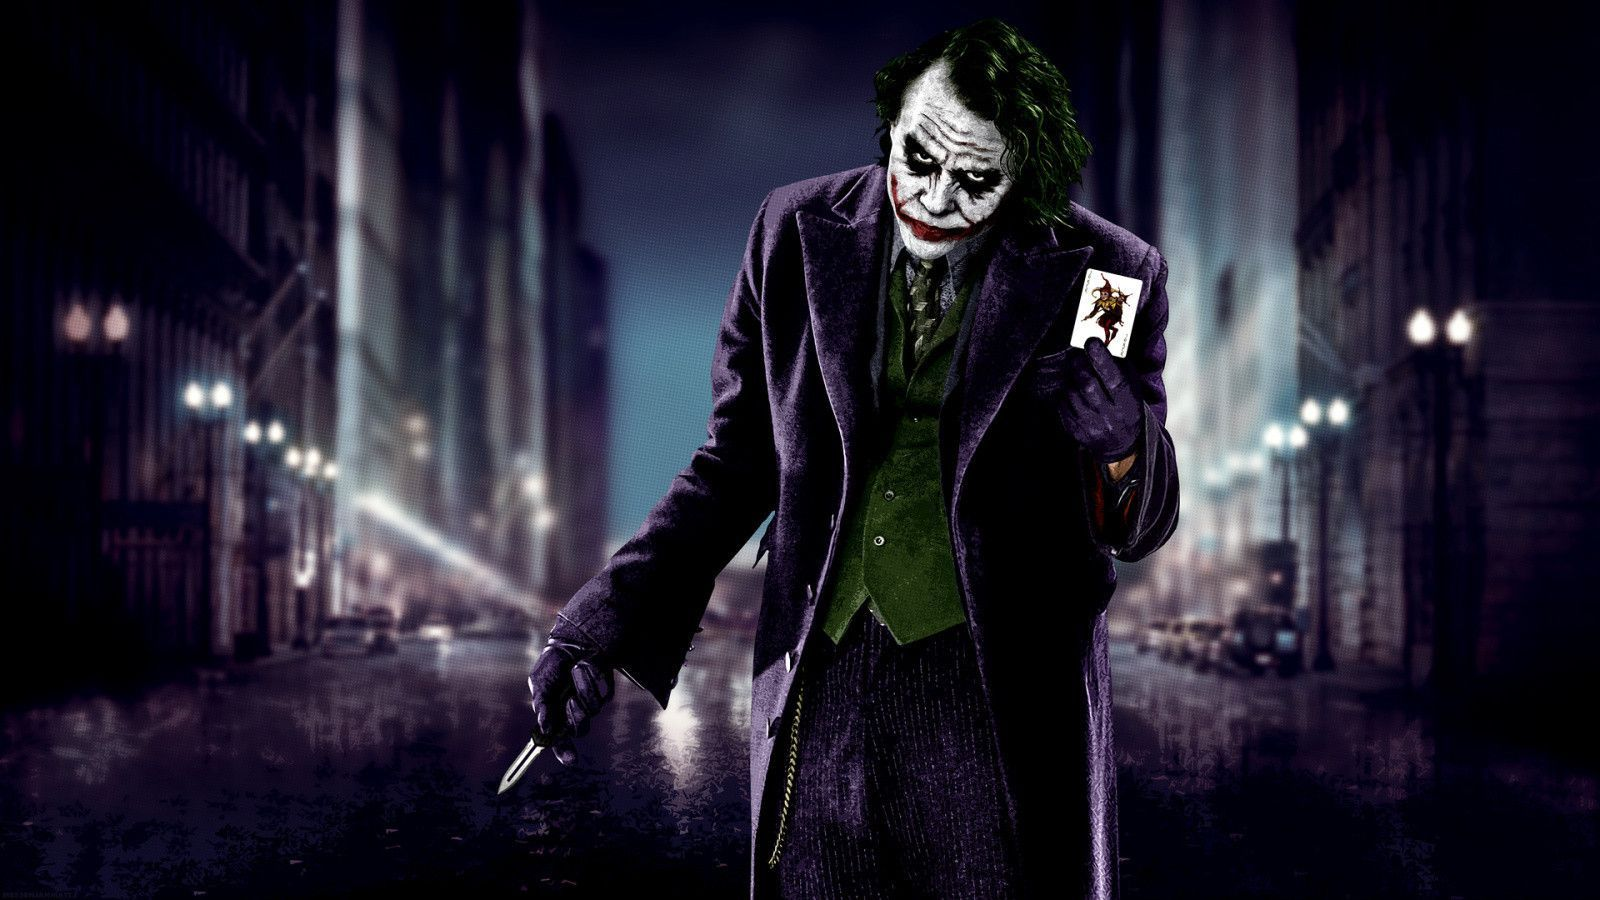 Joker Dark Knight Wallpapers